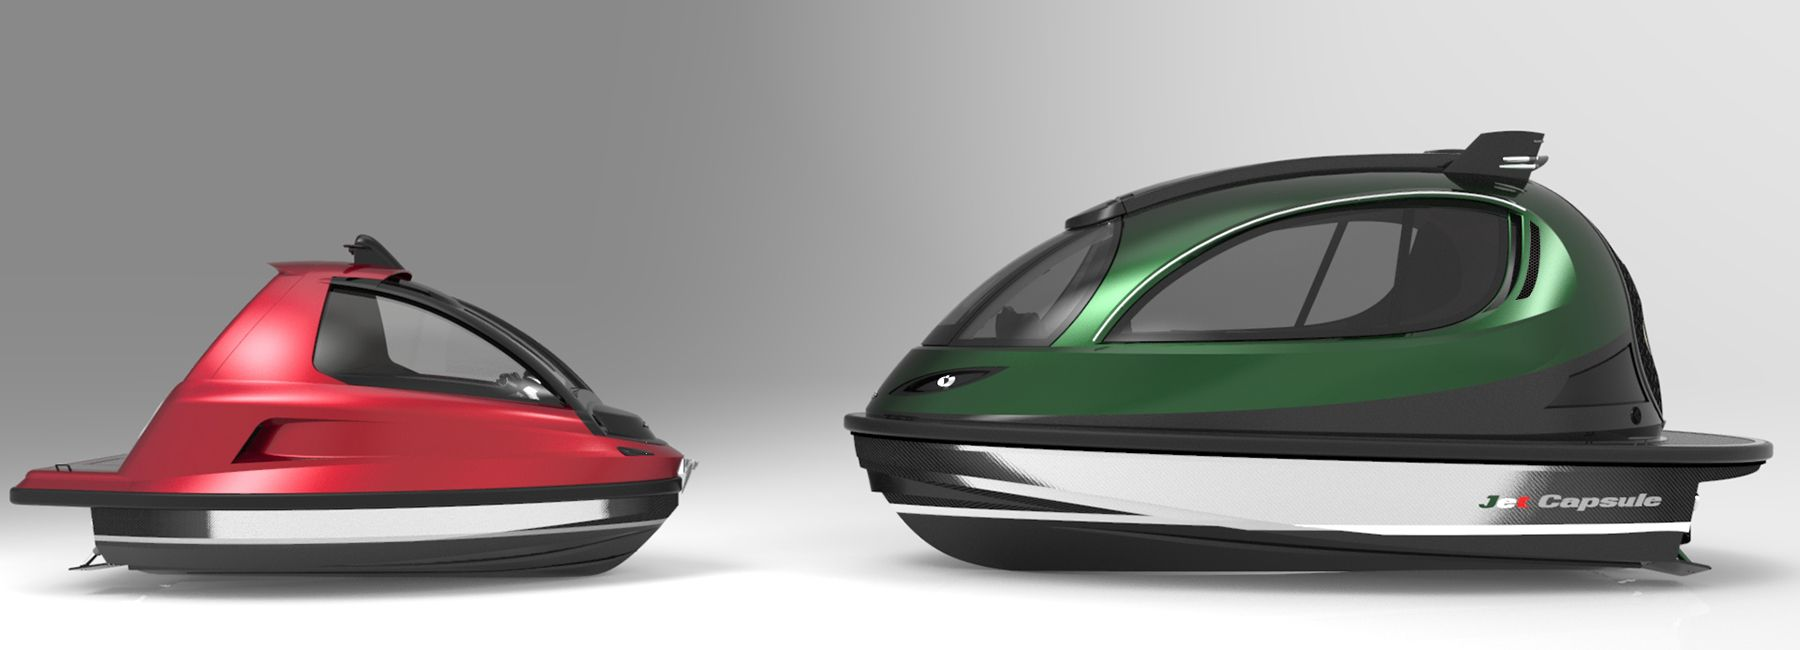 jet capsule packs italian lifestyle in their new only 5 meter-long mini jet